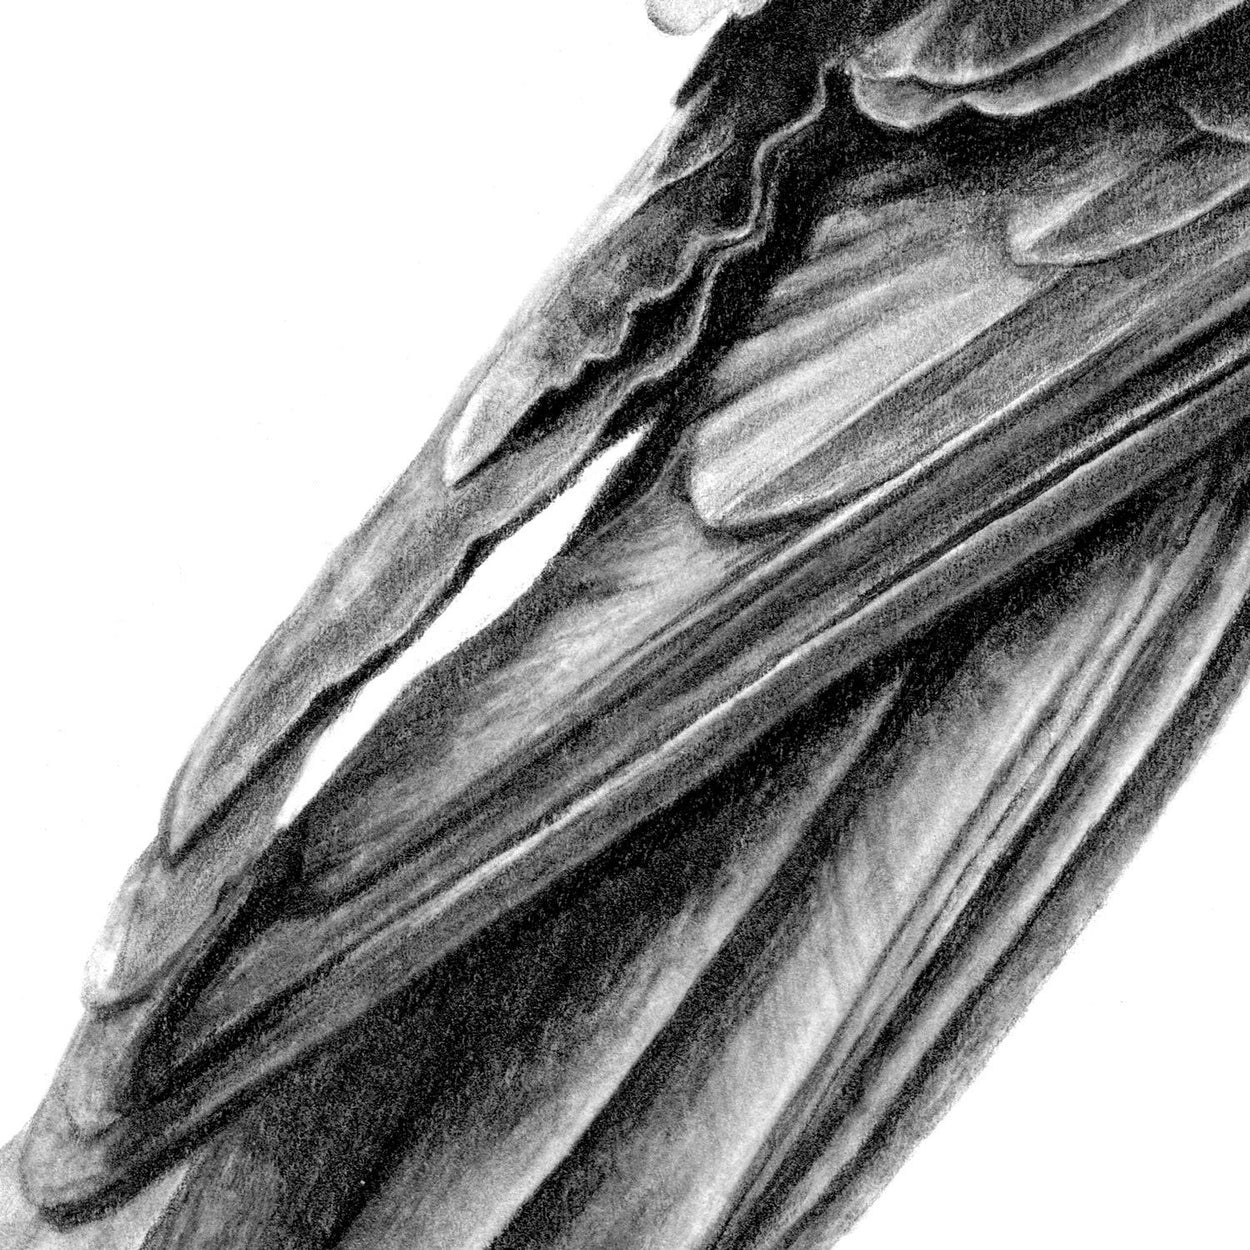 Crow Feathers Pencil Drawing Close-up - The Thriving Wild